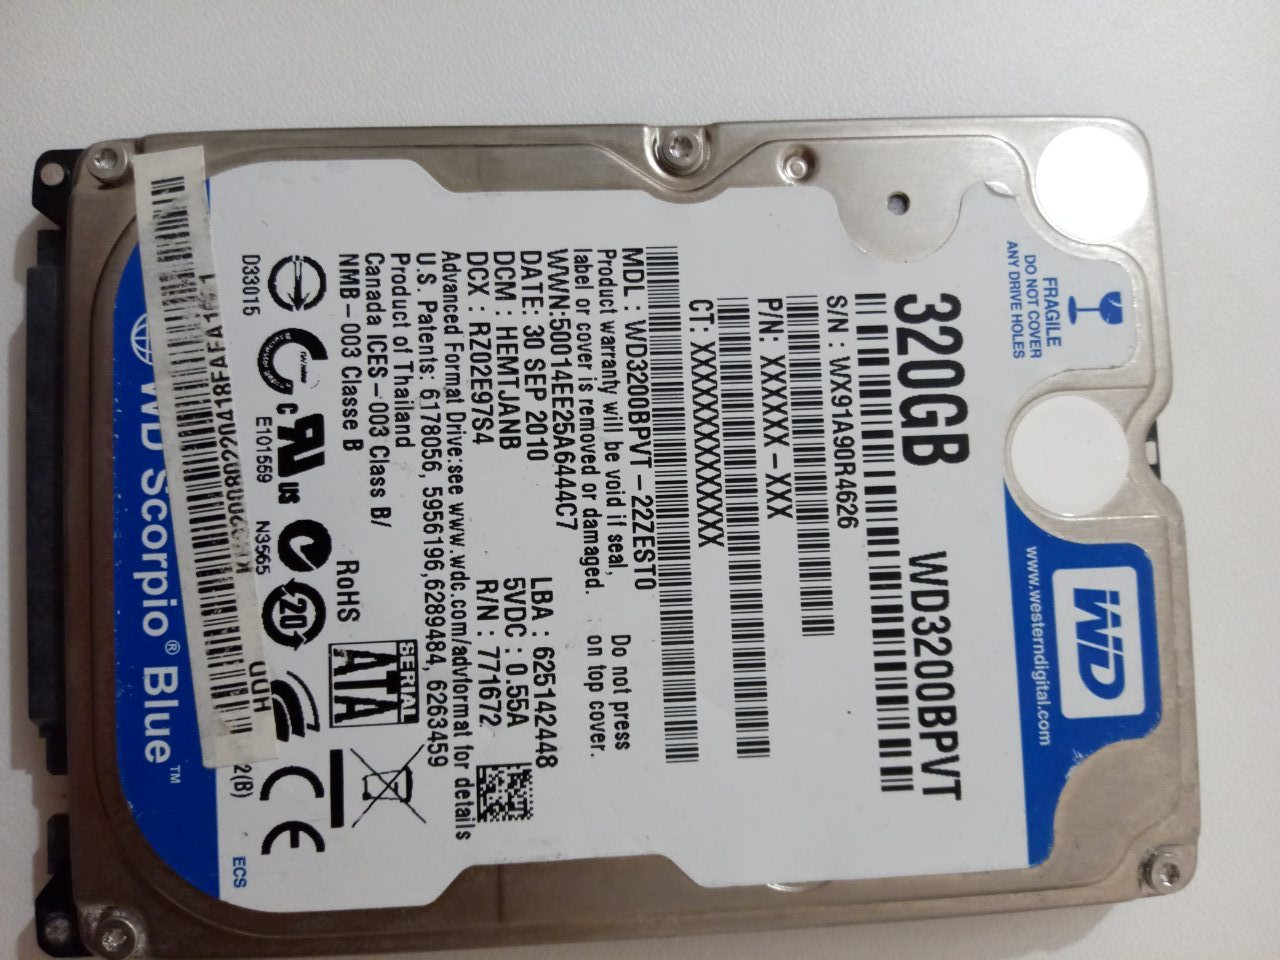 Жесткий диск Western Digital WD Scorpio Blue 320 GB (WD3200BPVT)